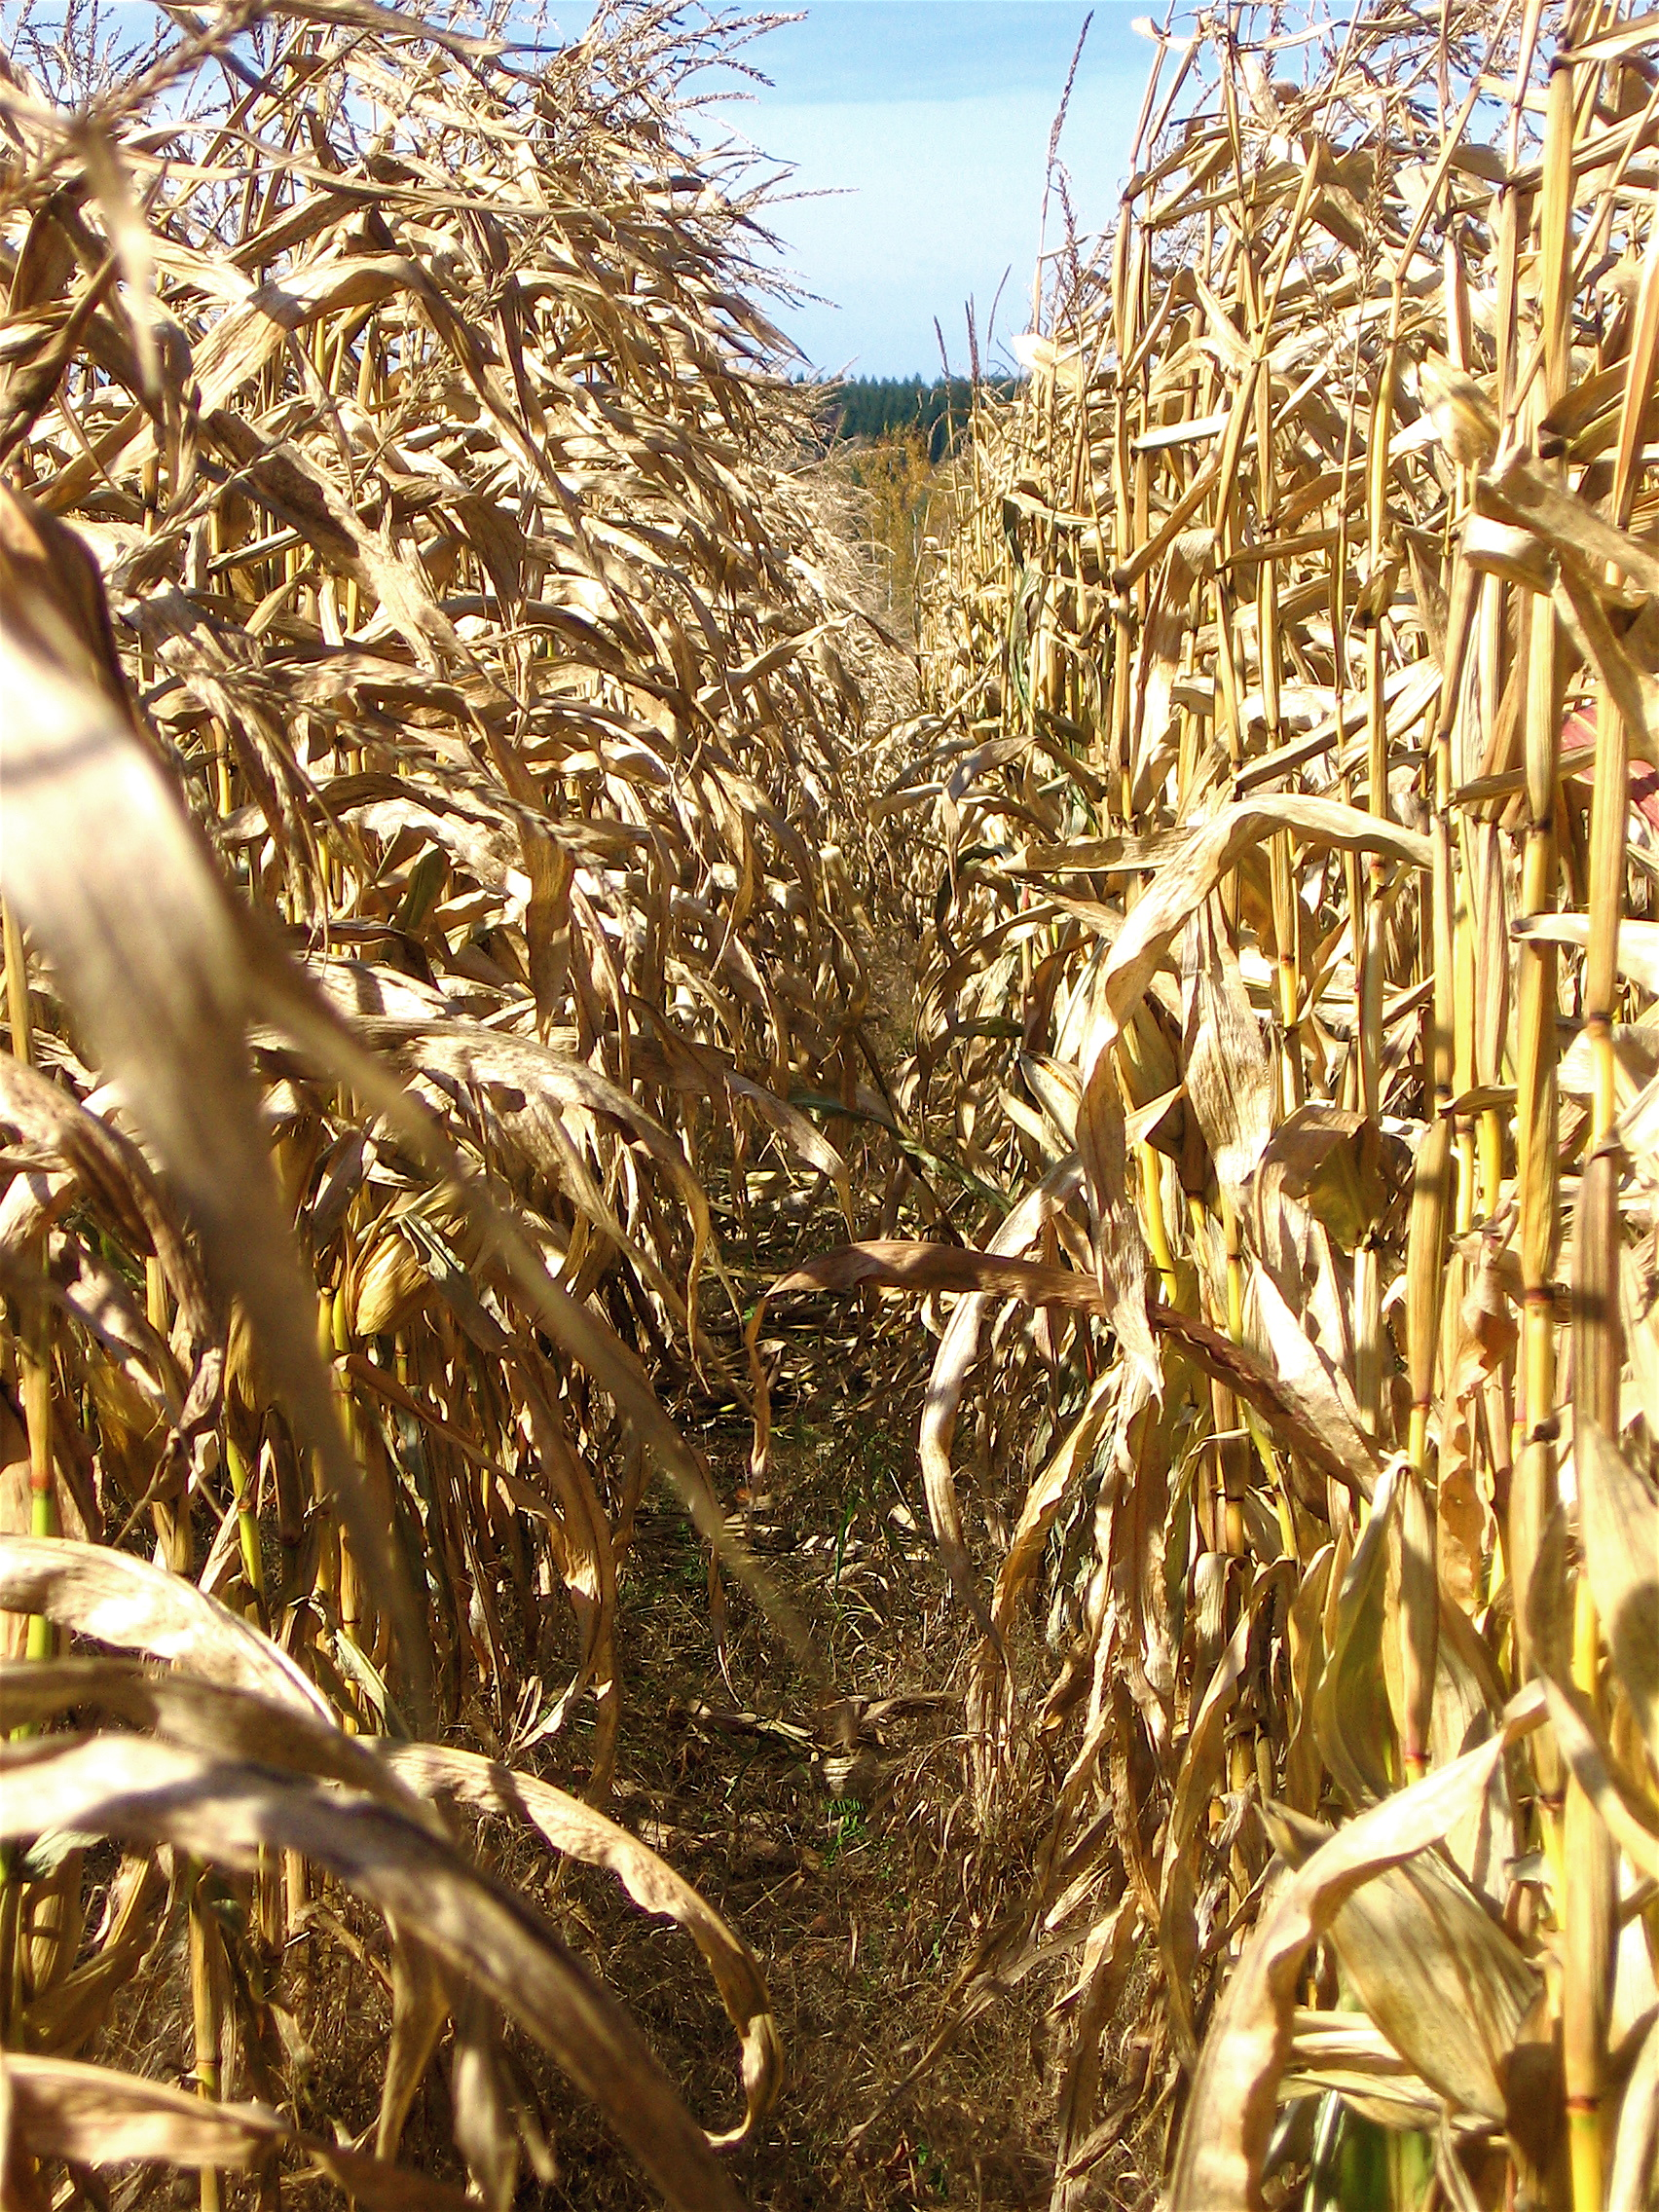 Corn Field, Corn, Crops, Dry, Field, HQ Photo